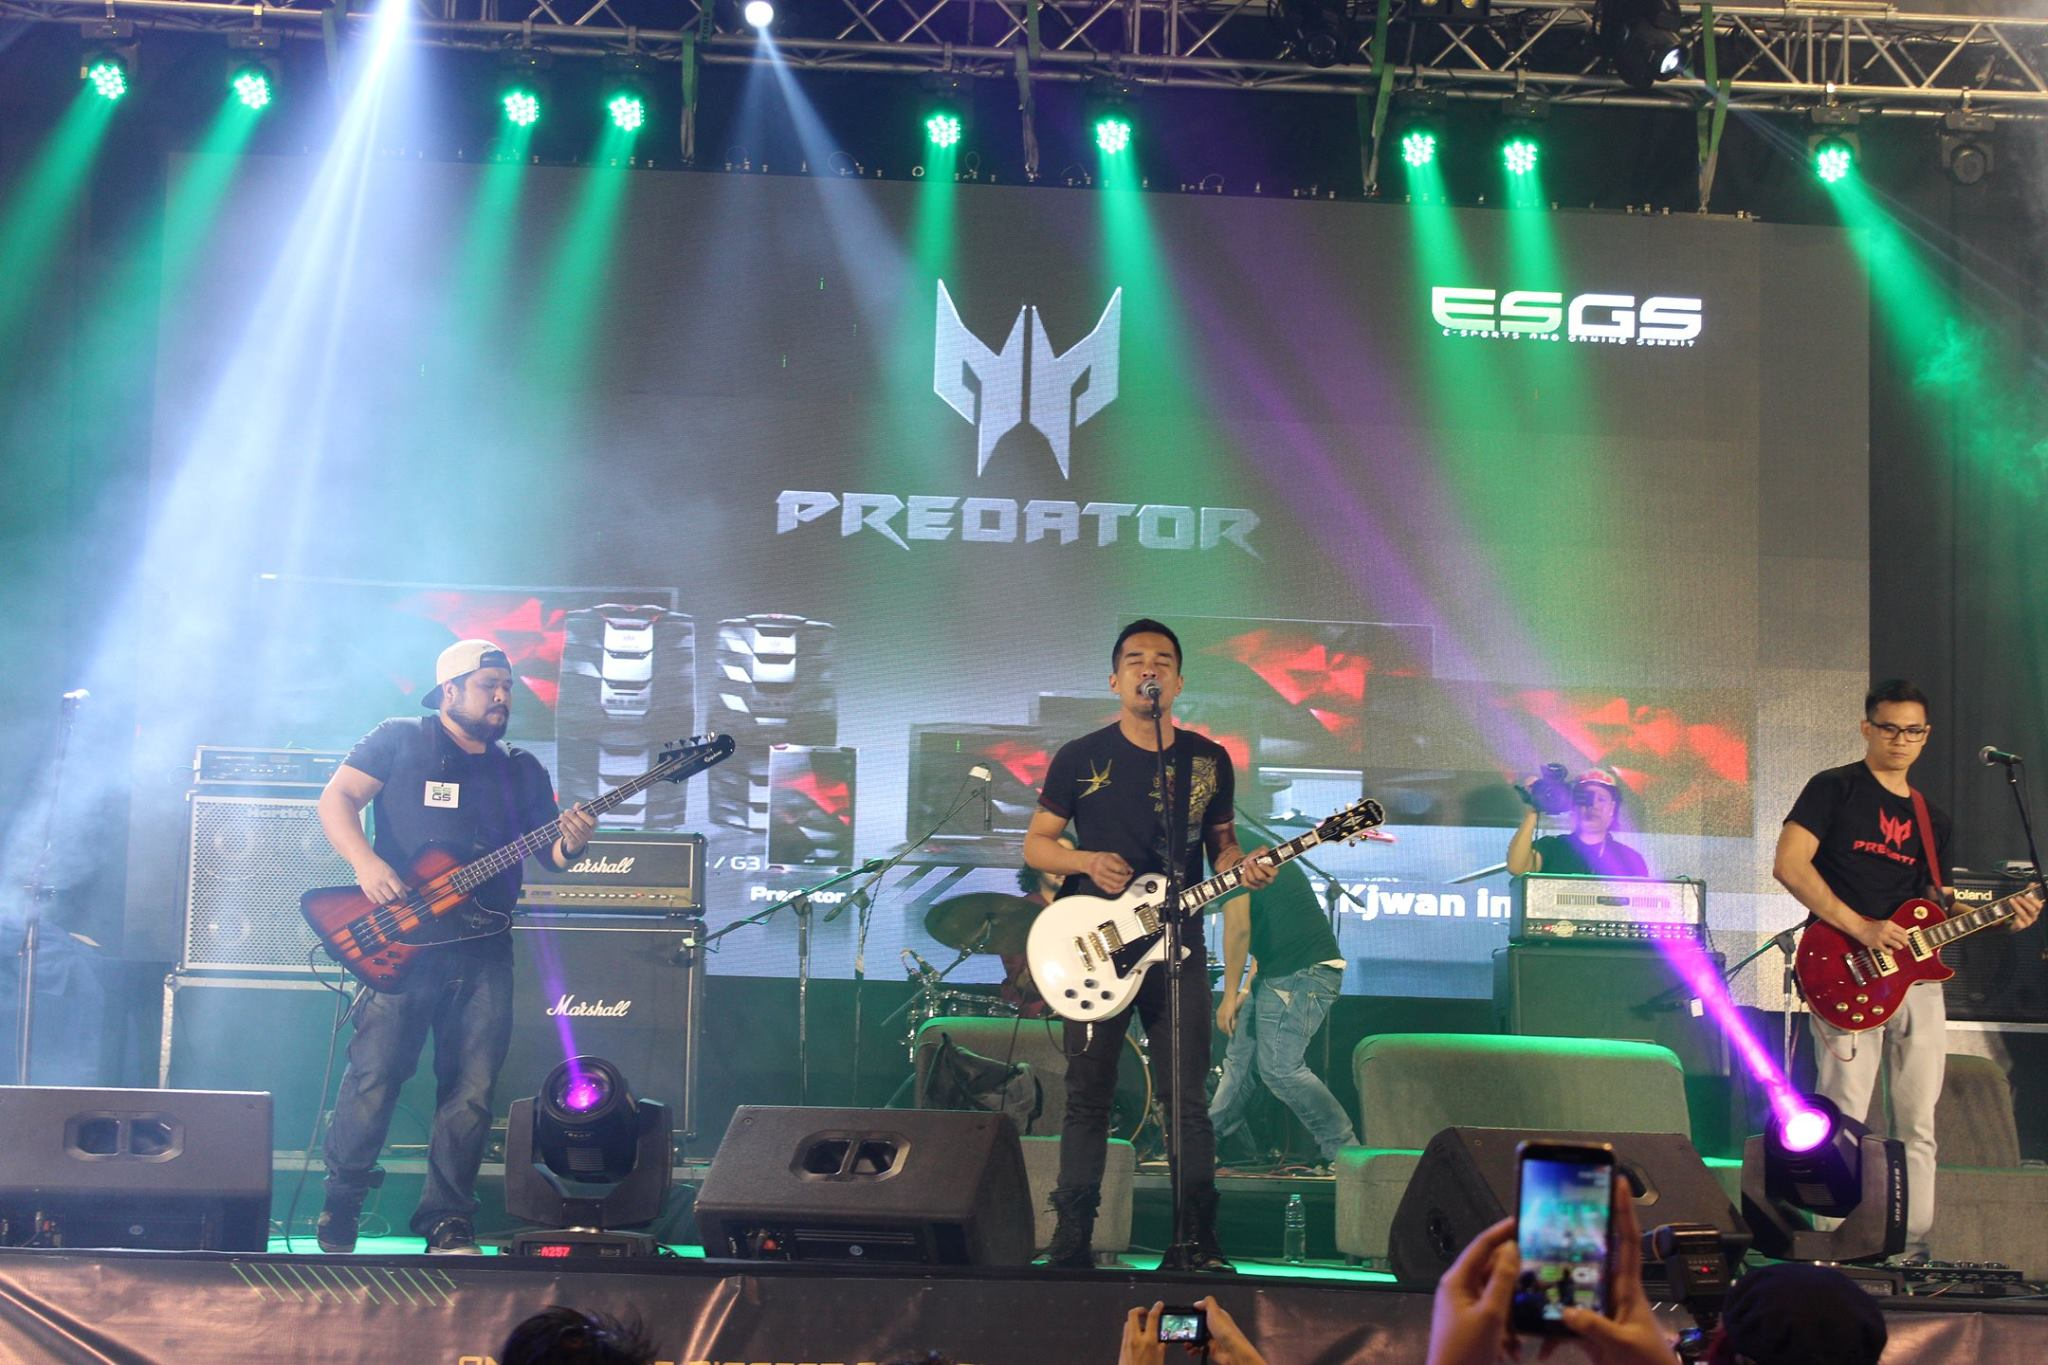 What is a Predator sighting without rocking music from the one and only Marc Abaya and Kjwan!